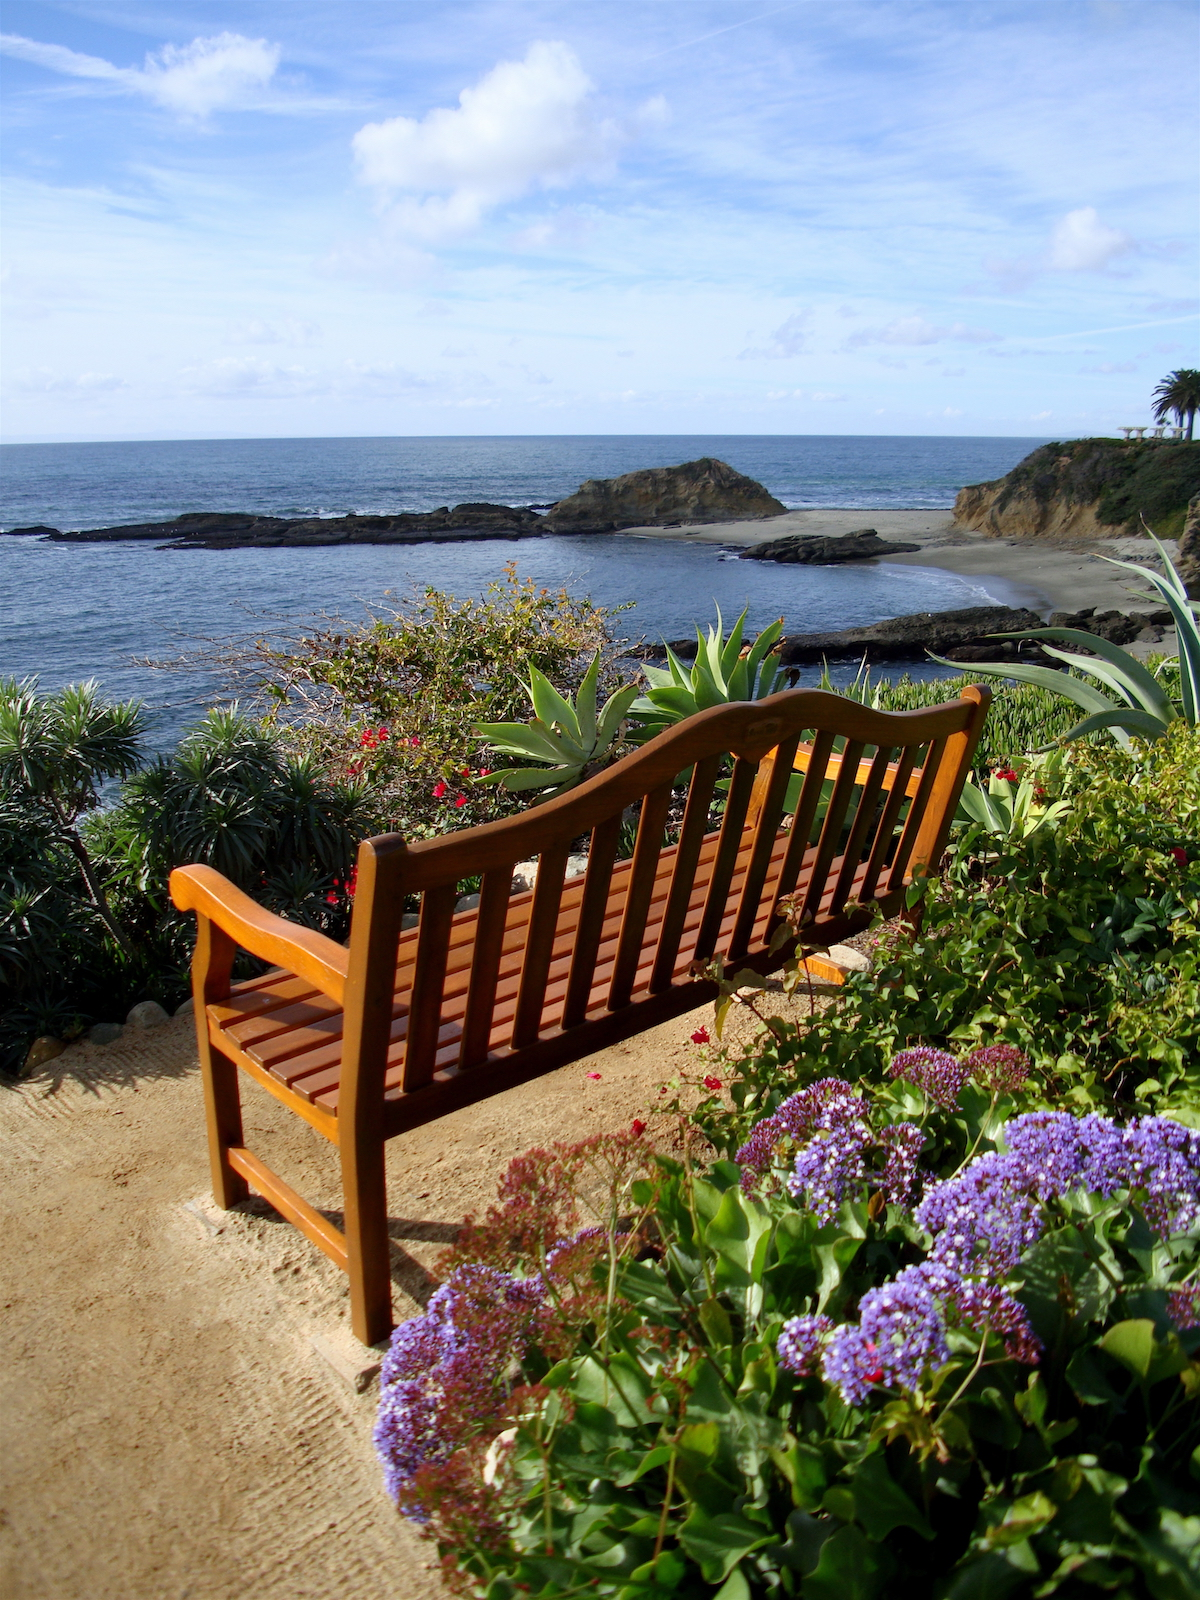 A bench on the edge of a cliff at the Montage Hotel in Laguna Beach